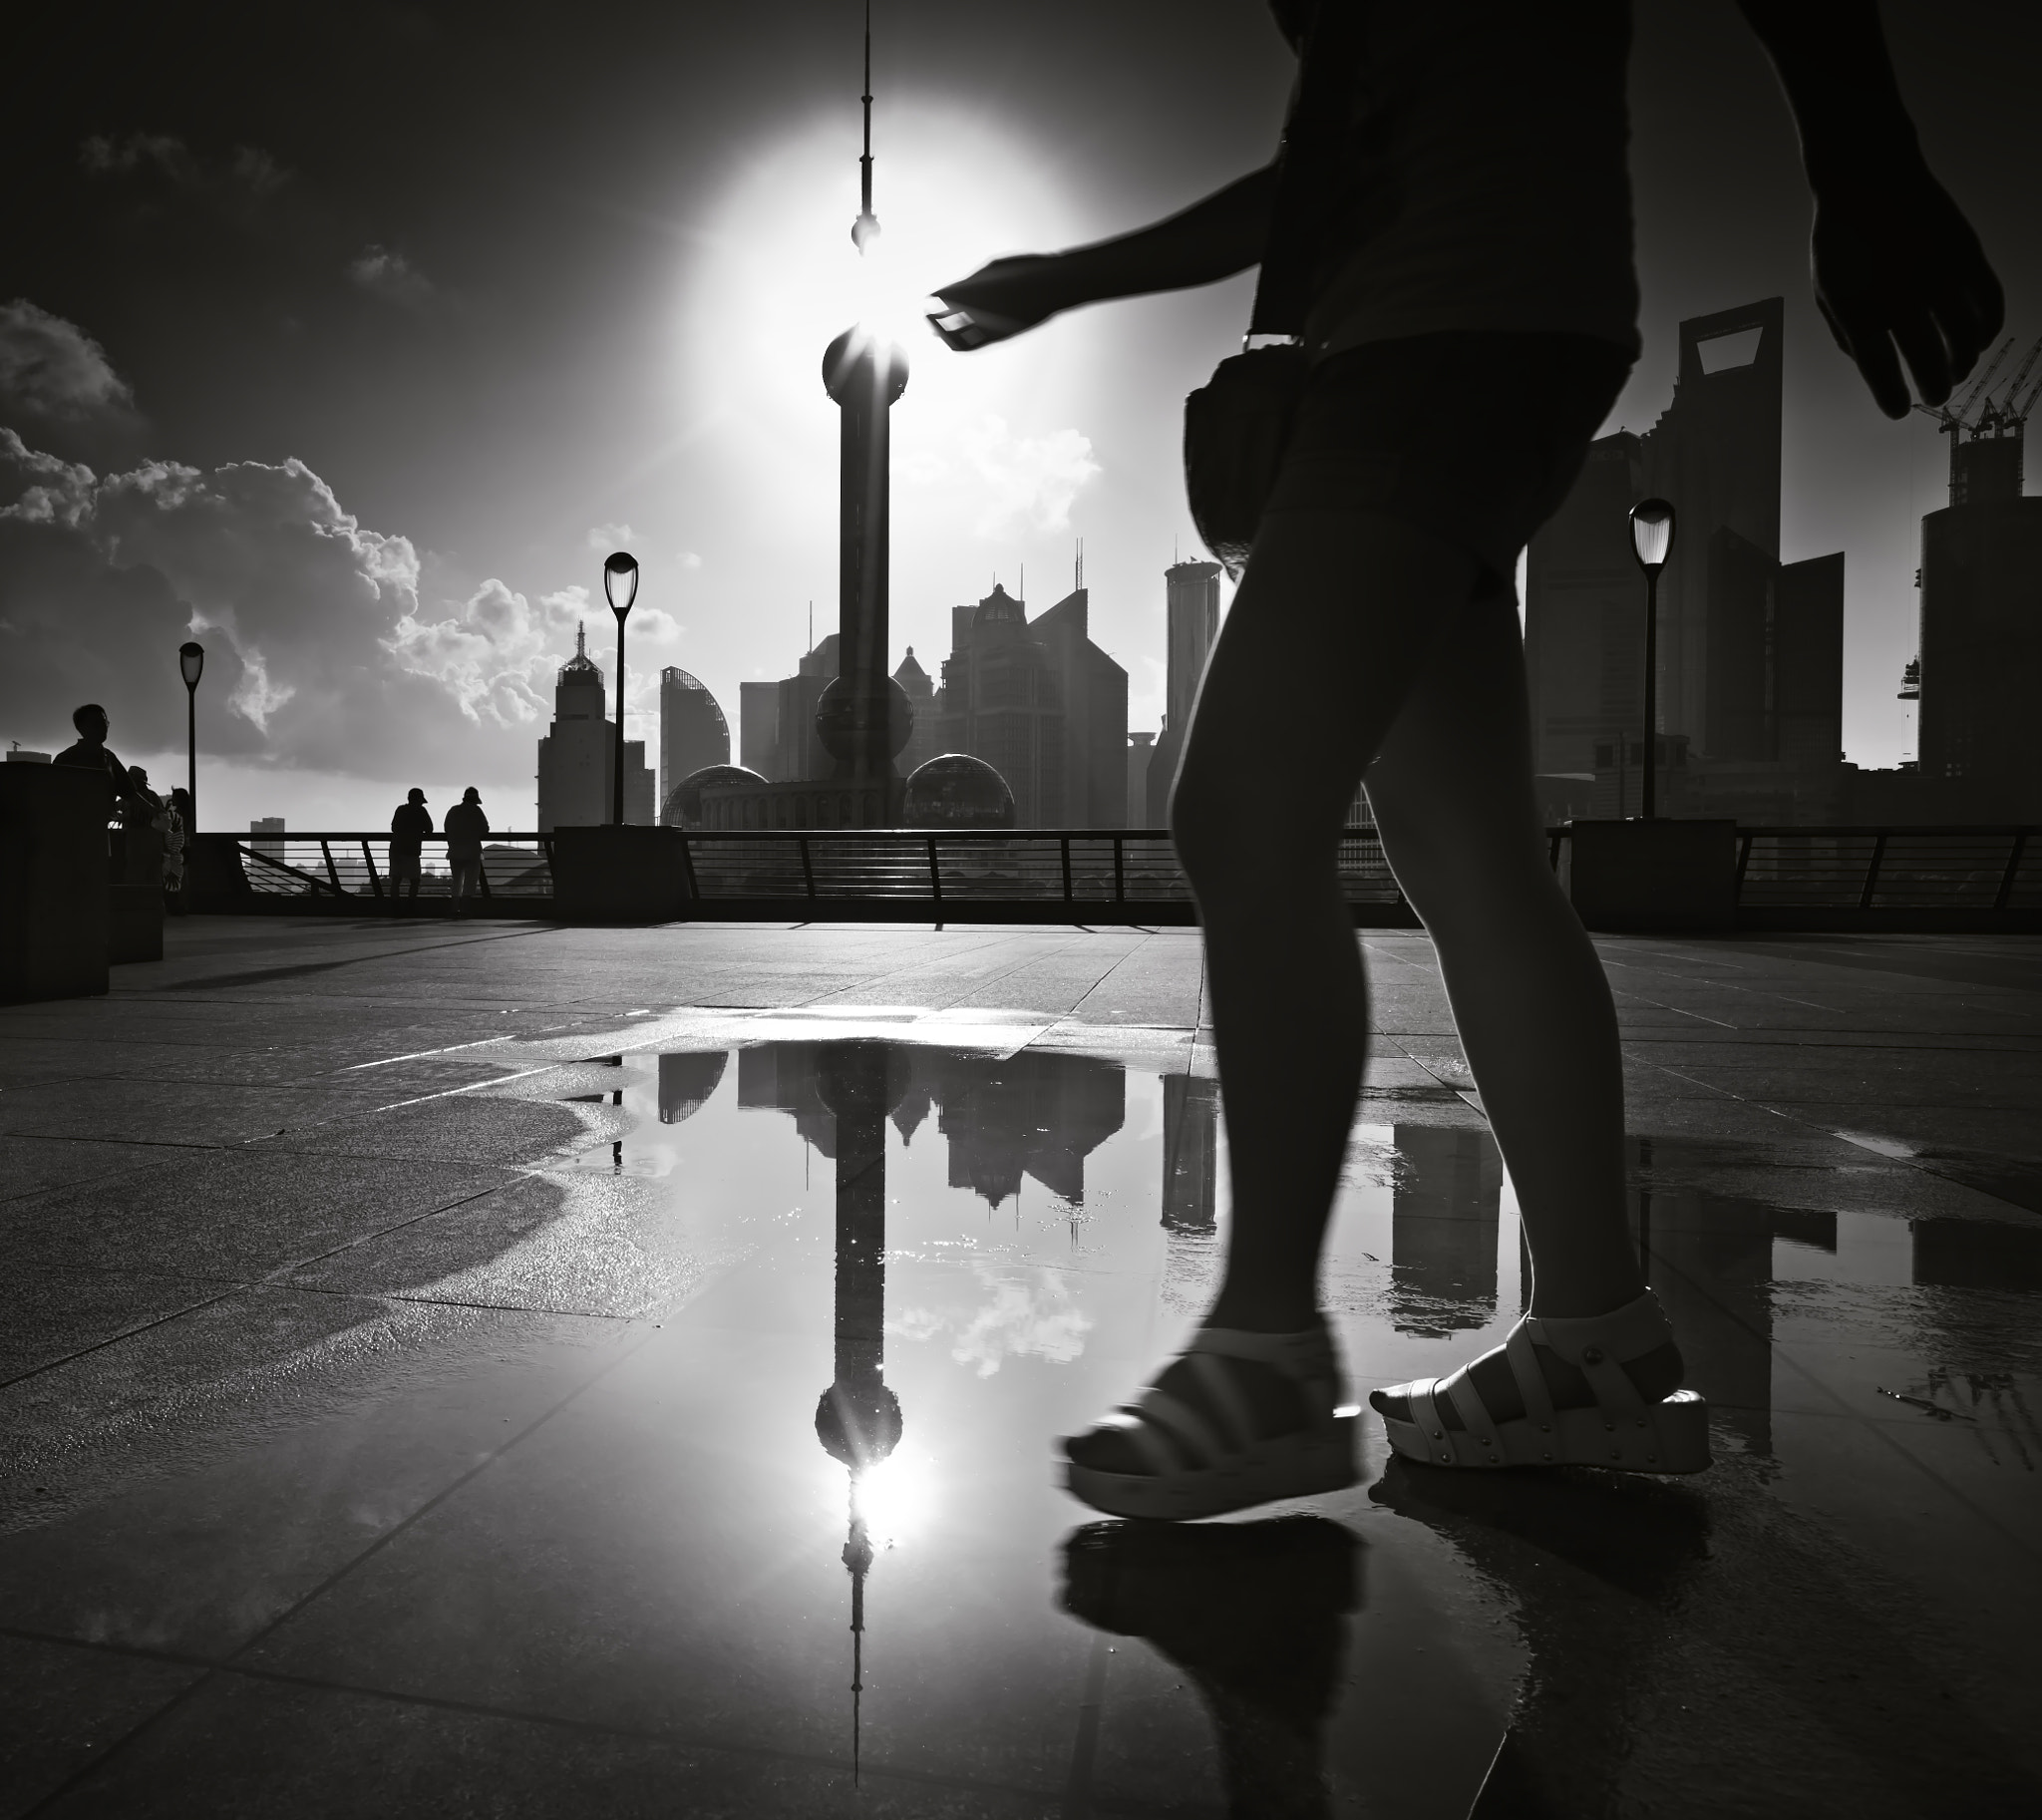 Photograph Shanghai's giantness by kostas maros on 500px